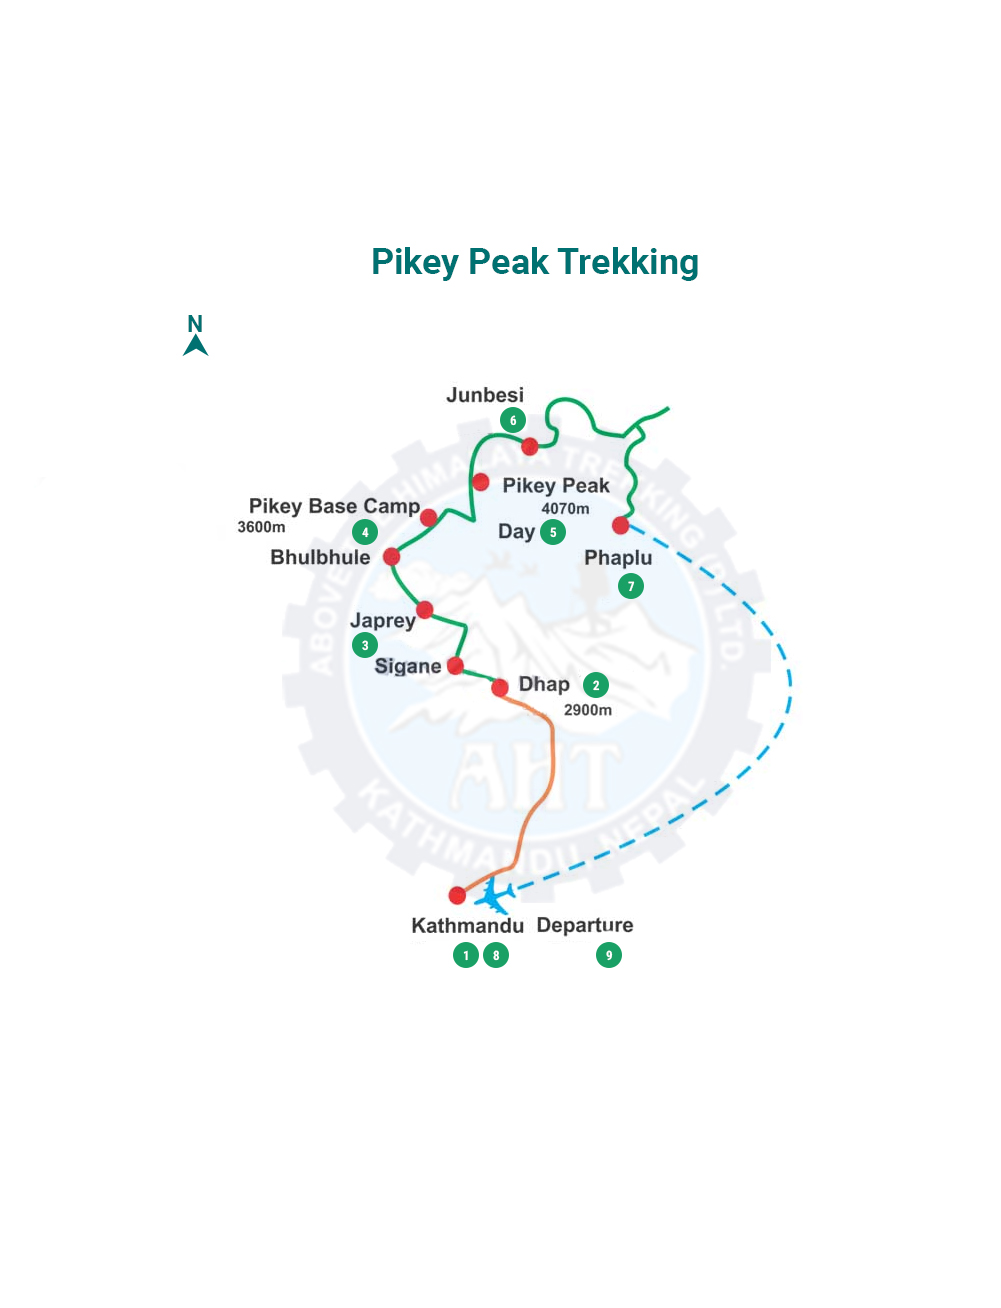 Pikey peak trek map